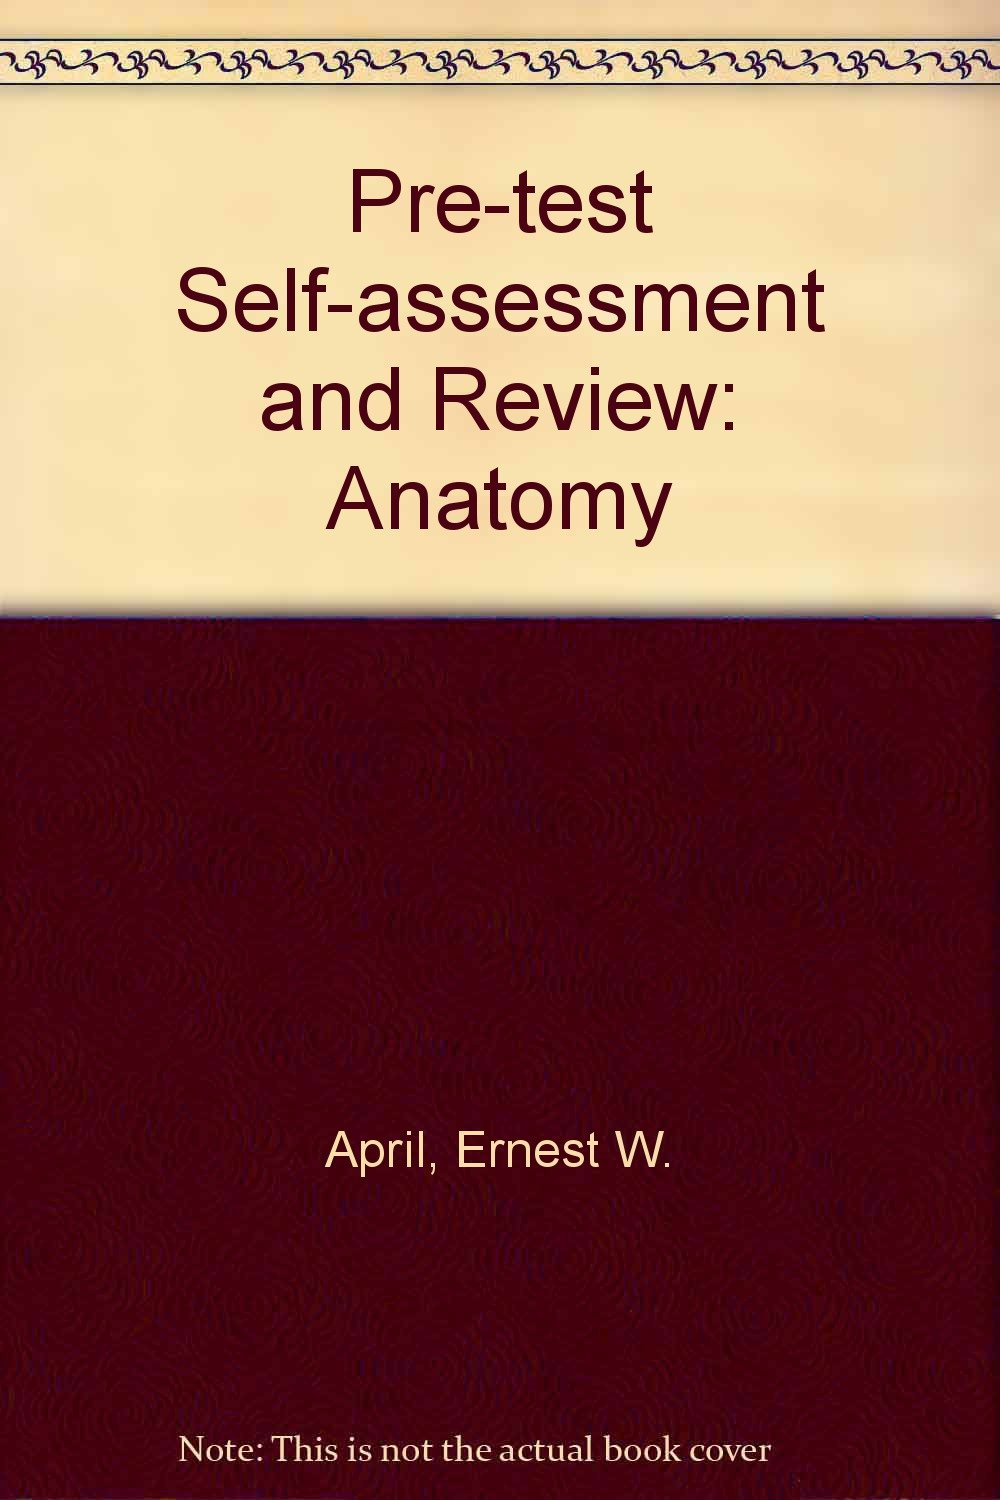 Pre-test Self-assessment and Review: Anatomy: Amazon.co.uk: Ernest W ...